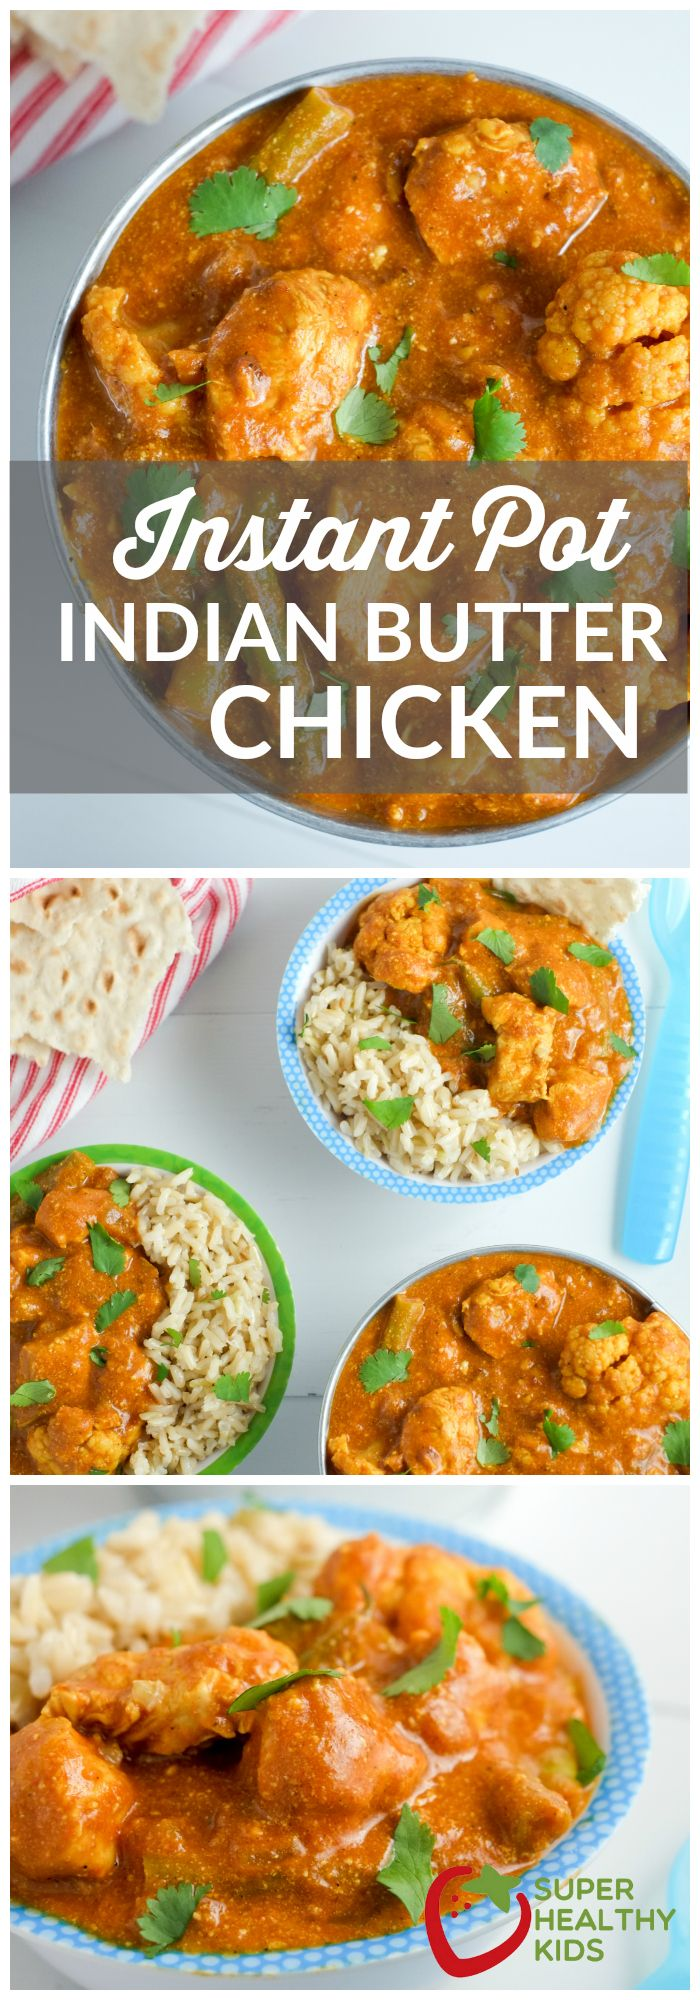 Easy Instant Pot Indian Butter Chicken Recipe | Super Healthy Kids ...